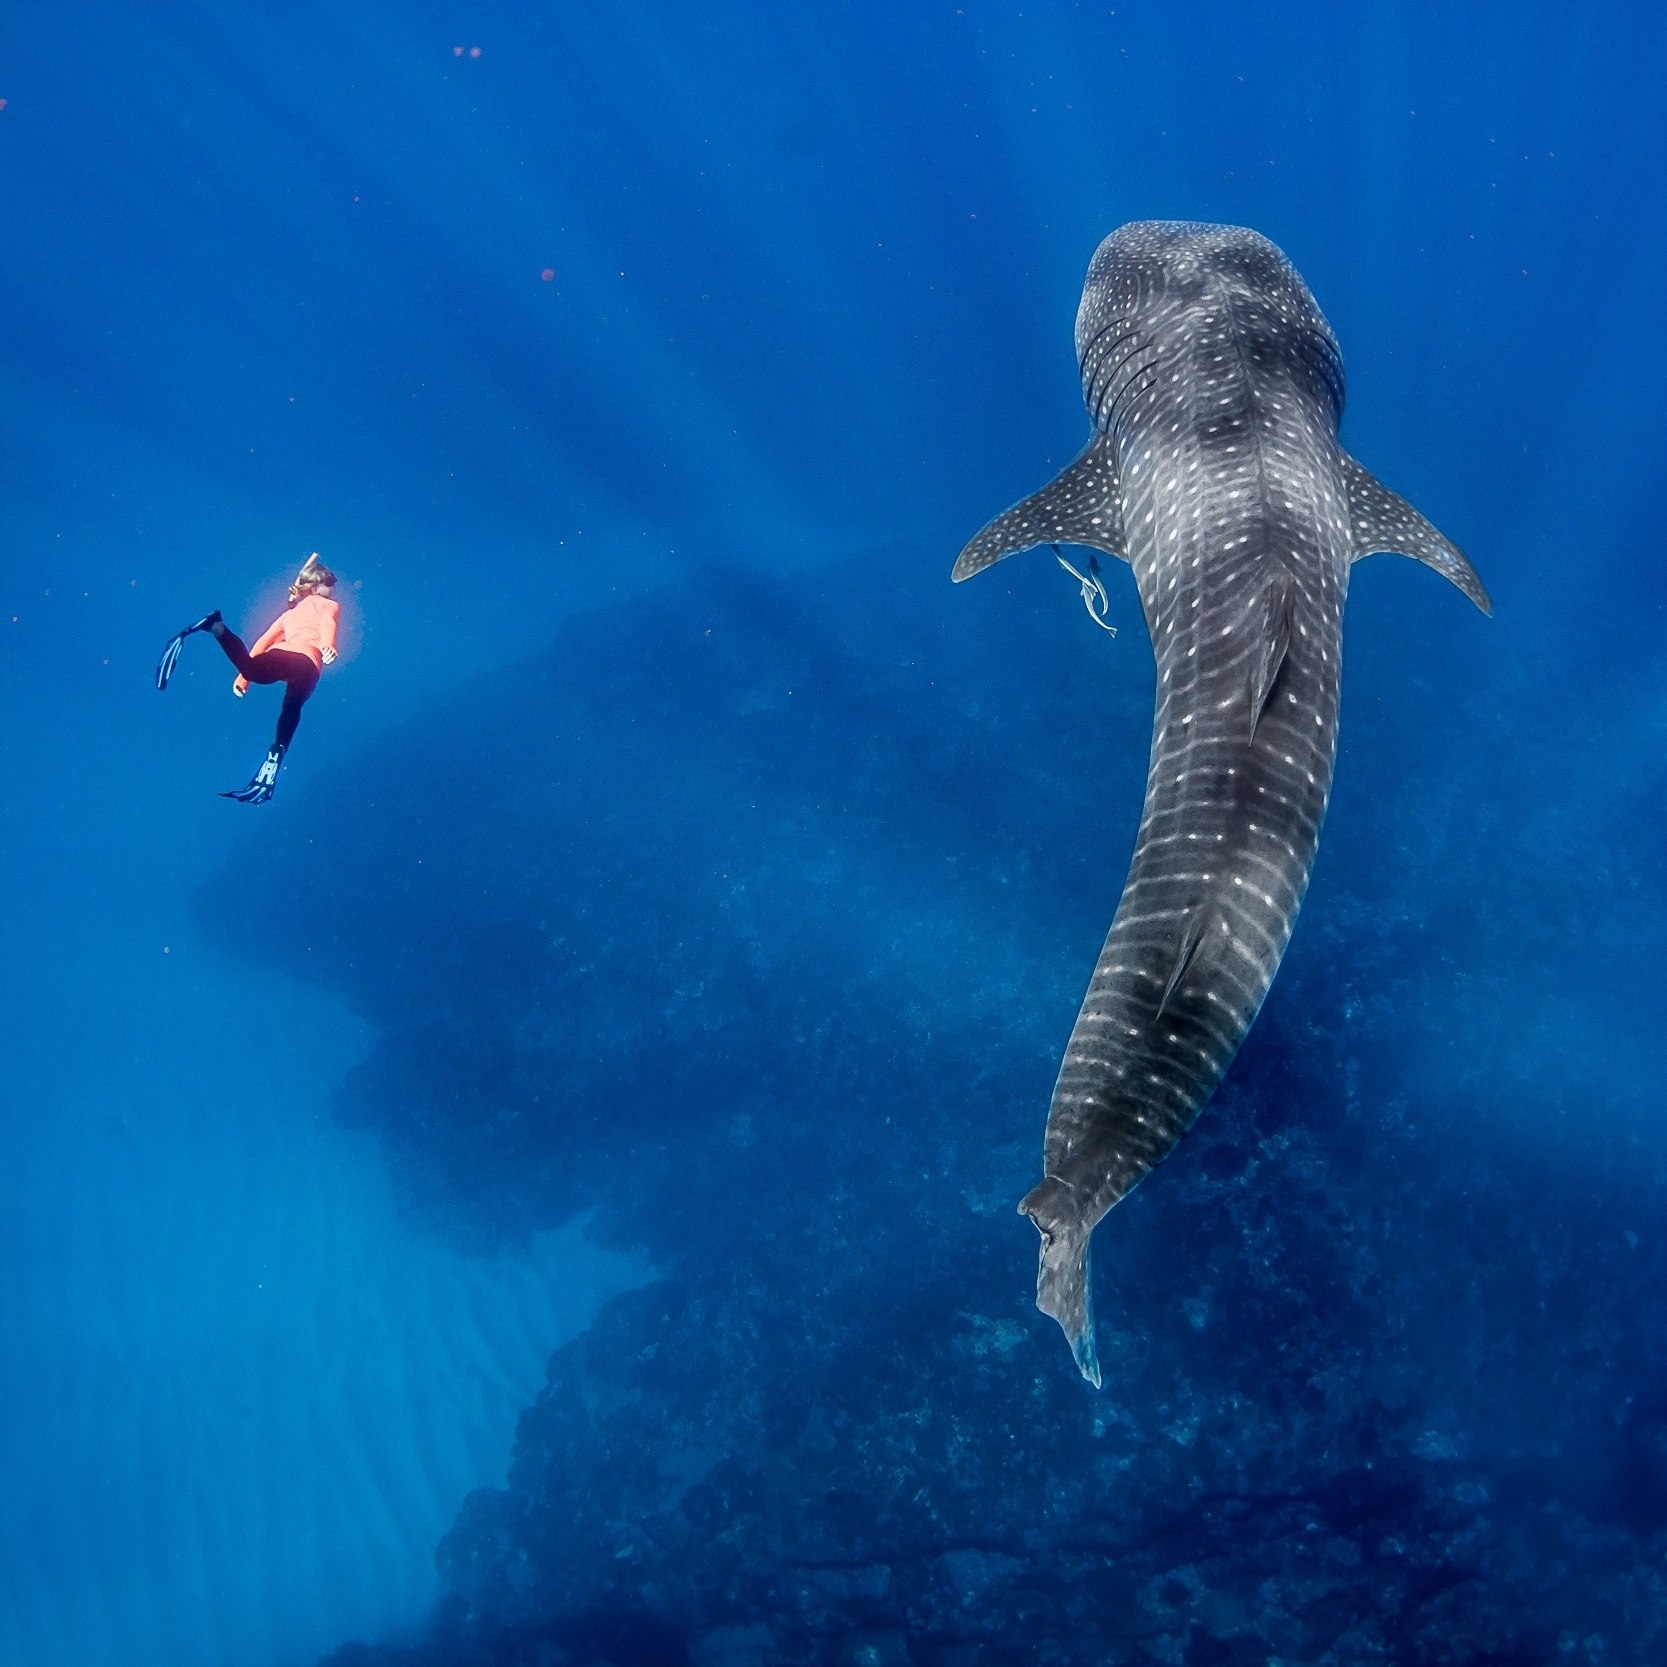 Snorkeler swims next to a whale shark near Exmouth © Chris Jansen/Live Ningaloo